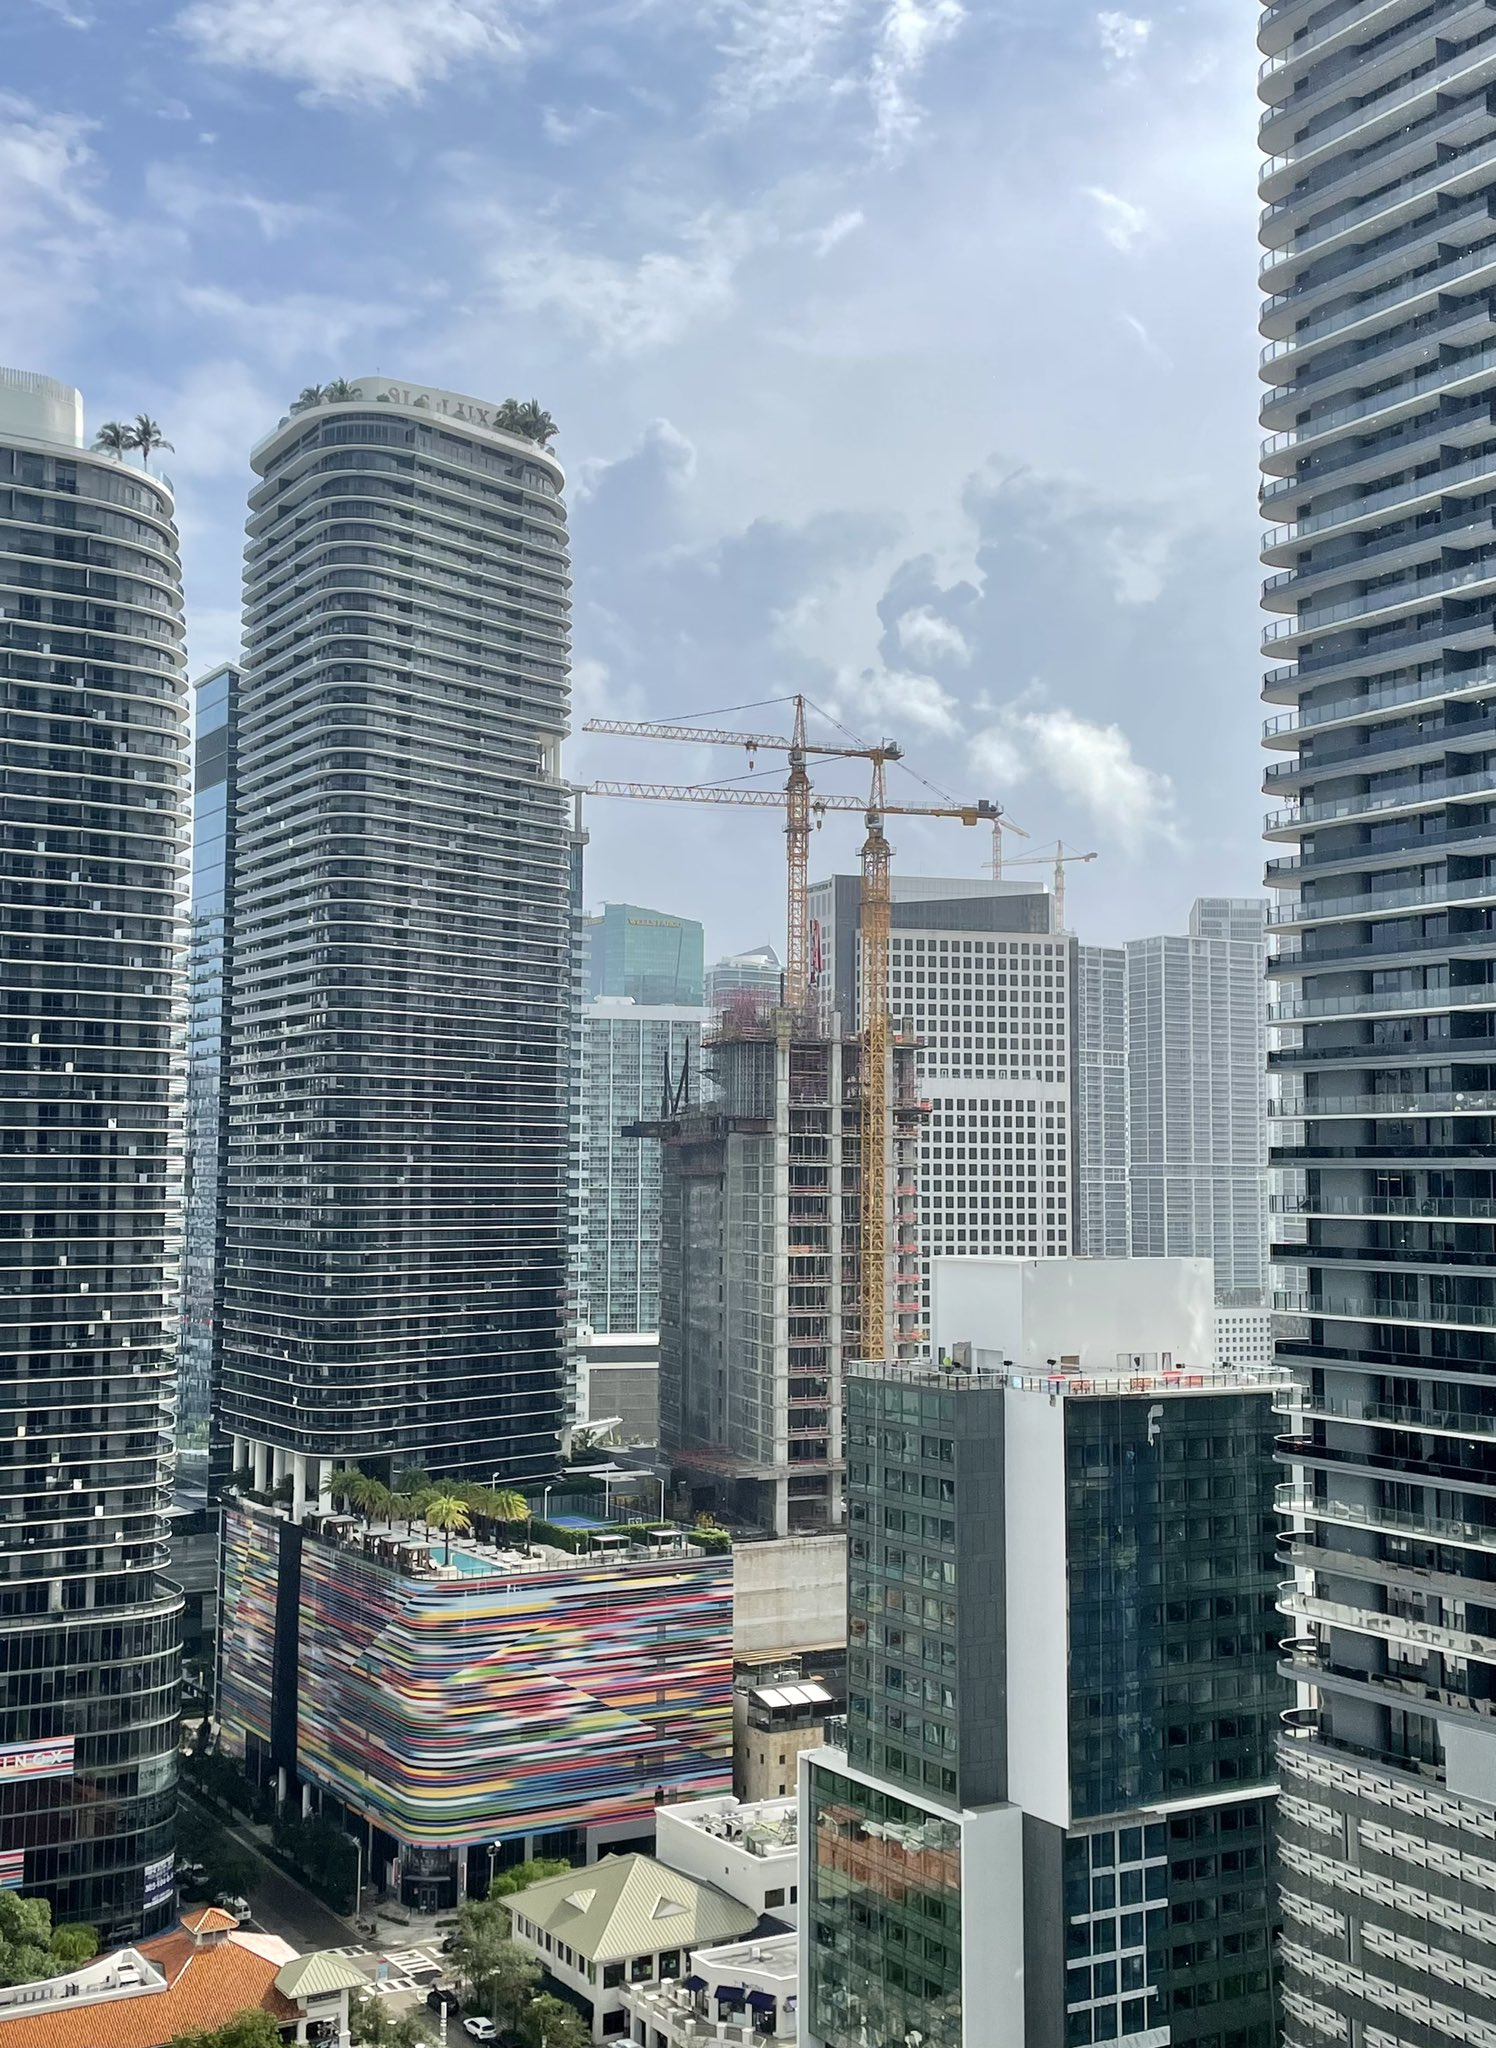 Construction Continues At 830 Brickell, Set To Become Miami's Second Tallest Office Tower